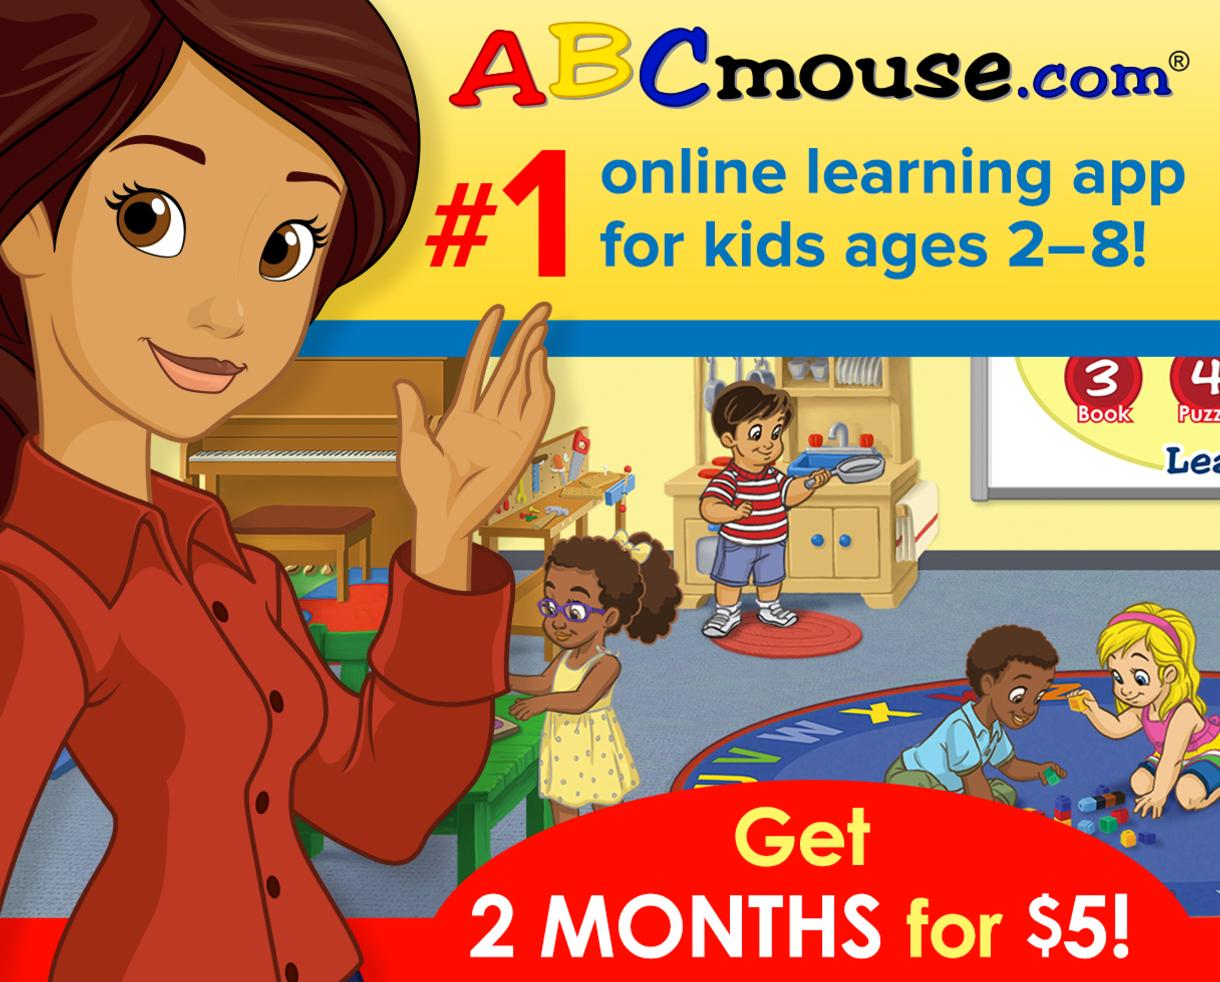 Back-to-School Offer: Get 2 Months of ABCmouse.com for Only $5!